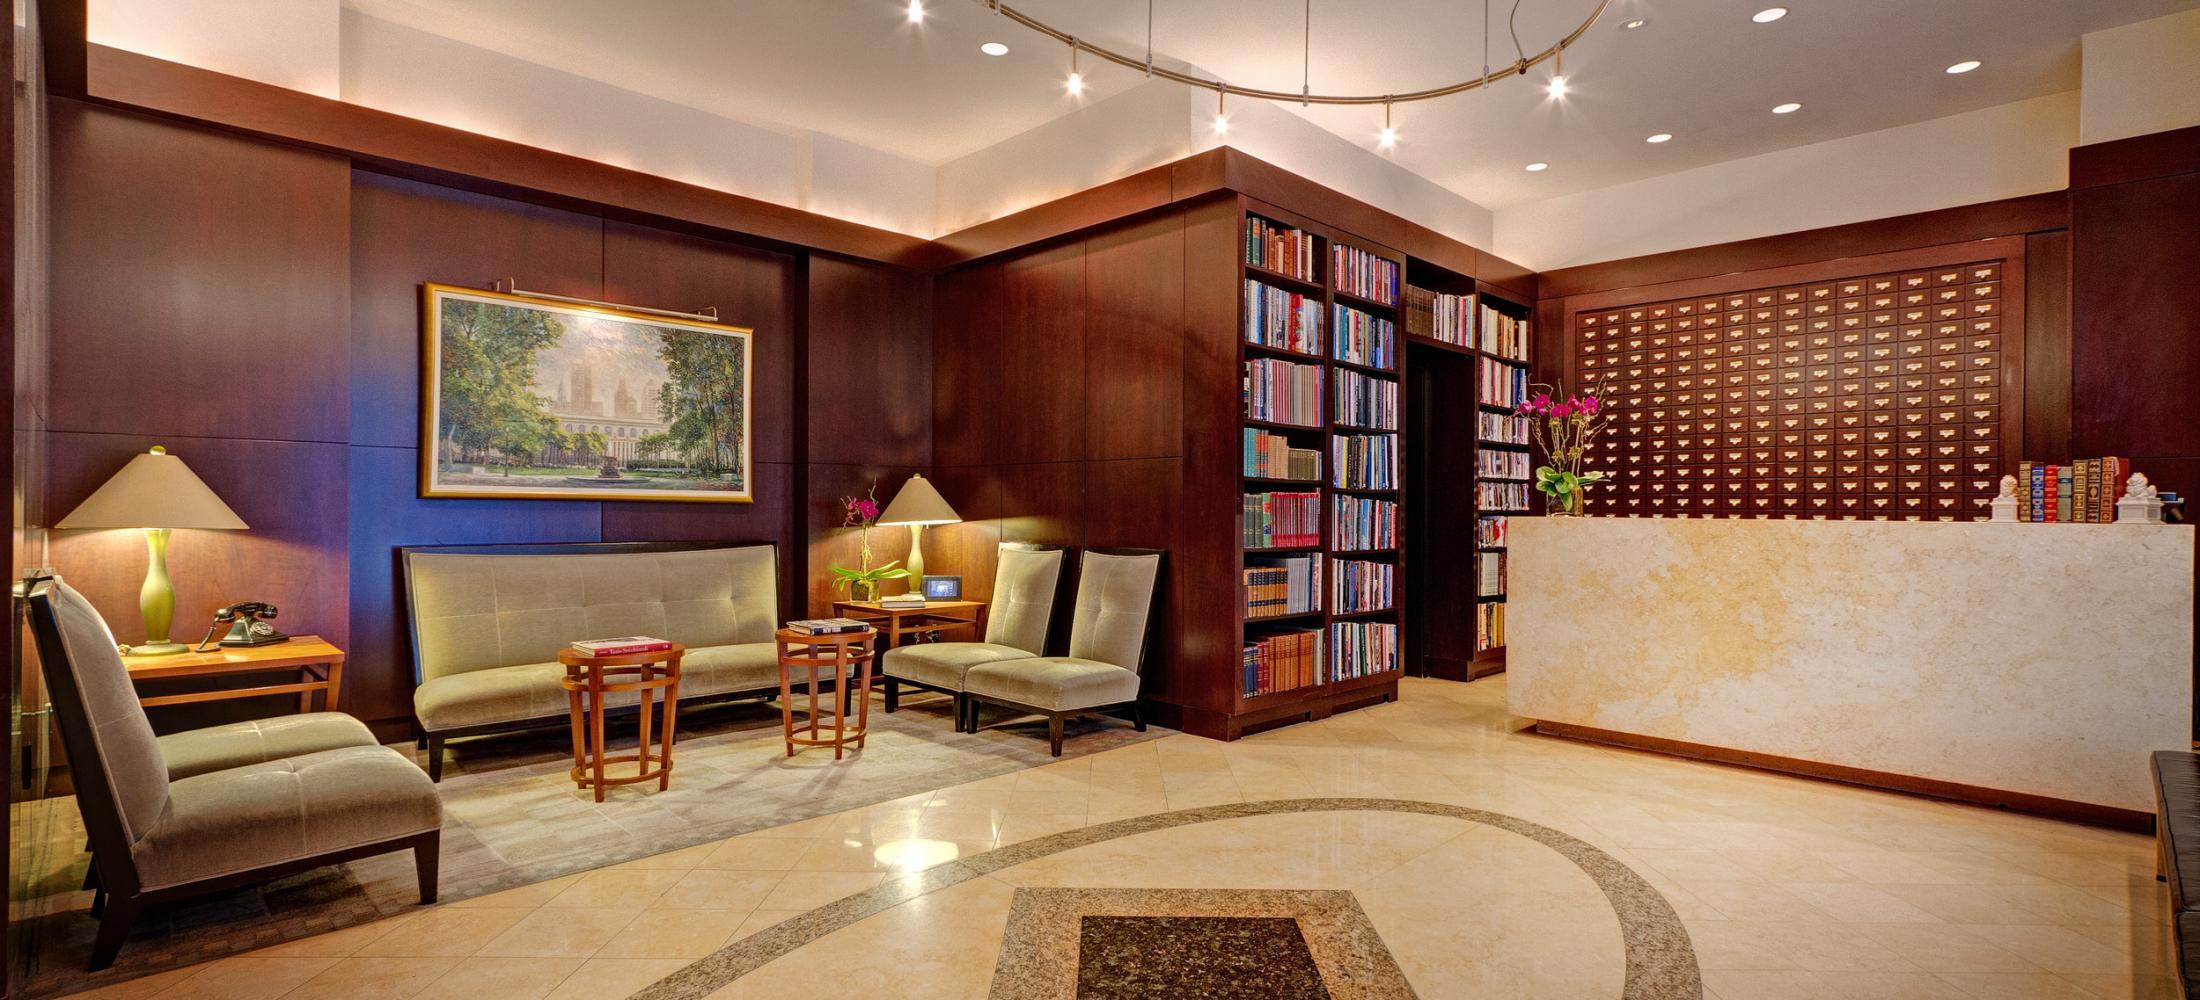 Library Hotel is centrally located in Midtown Manhattan, within walking distance to many of New York City's top attractions, and around the corner from all forms of public transportation.